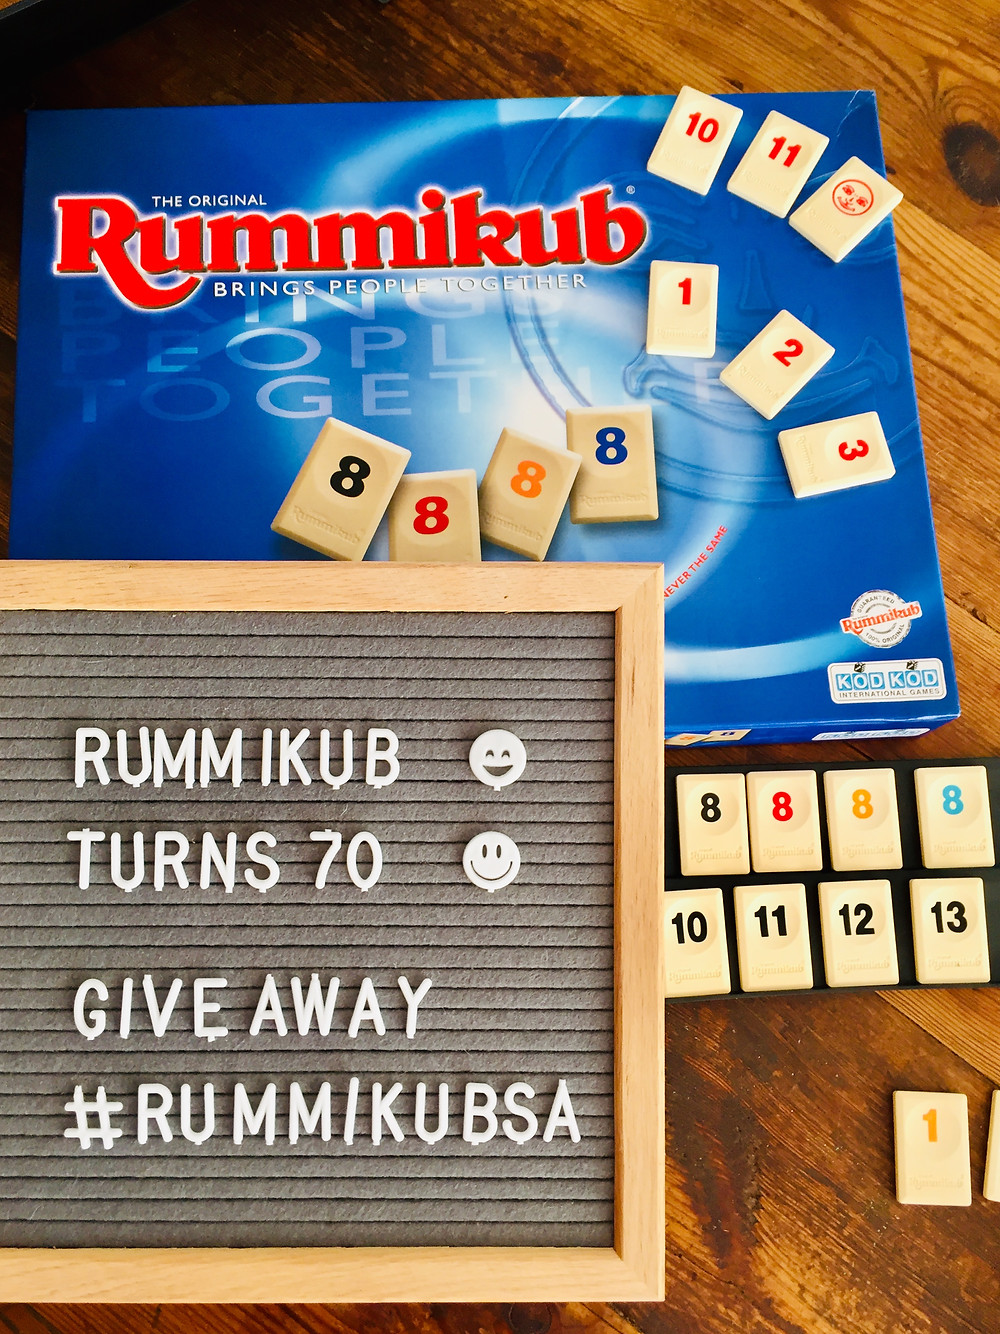 Primatoys Rummikub has been in South Africa for 70 years. To celebrate this iconic game turning 70 they are giving away a set on my Mommyincapetown Instagram account.